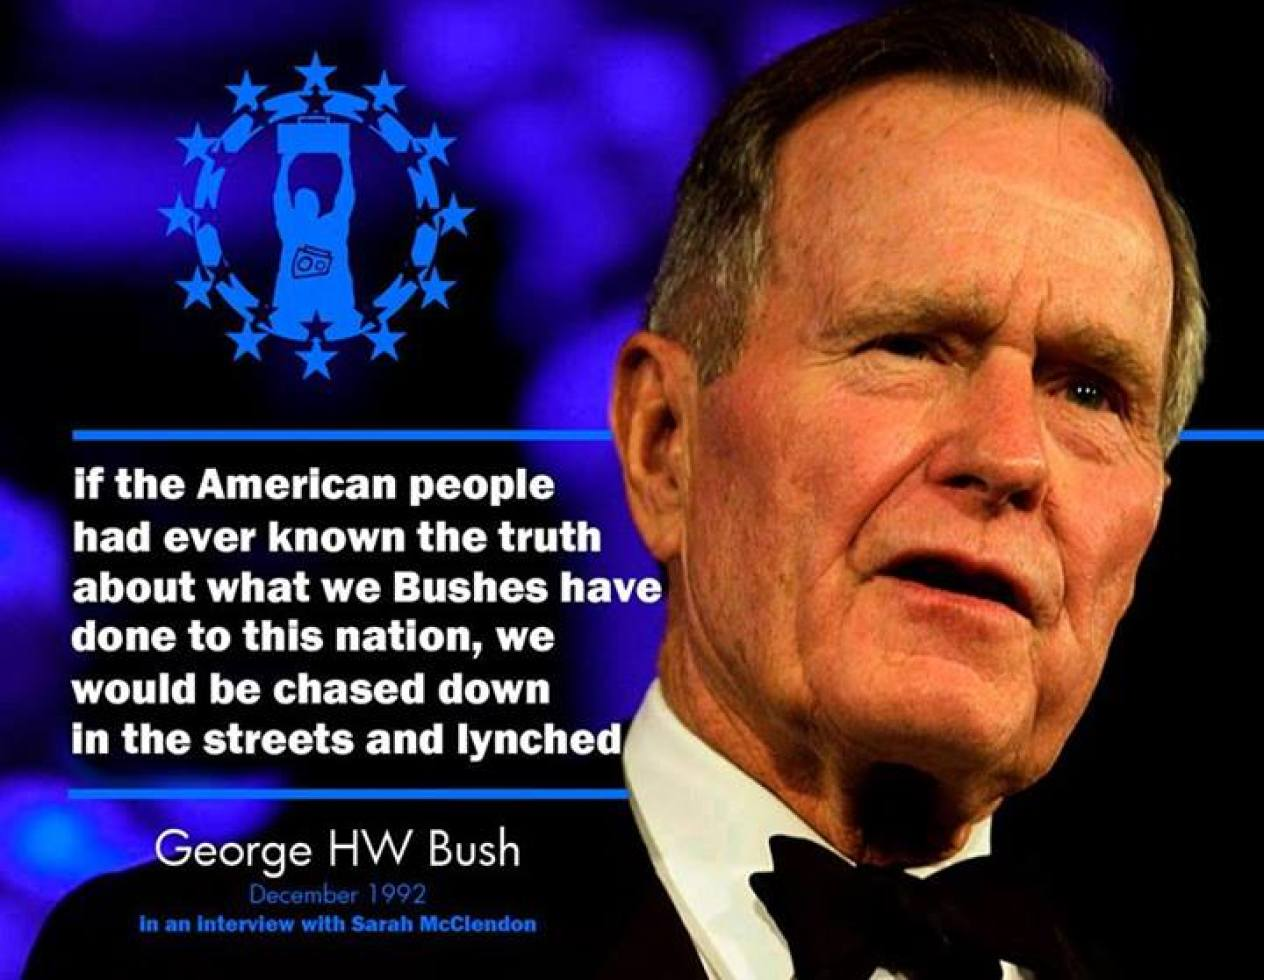 Prescott Bush (father of HW/grandfather of W), along with Federal Reserve founders Paul Warburg and John D. Rockefeller, laundered money to Hitler, before and during his rise to power. Bush was the only one to have his company seized under the Trading with the Enemy Act. The Bushes, Warburgs, and Rockefellers are part of the root of the two party stranglehold. Abby Martin did a segment on American corporations that funded the Nazis: http://www.youtube.com/watch?v=RXh7HfEFhik